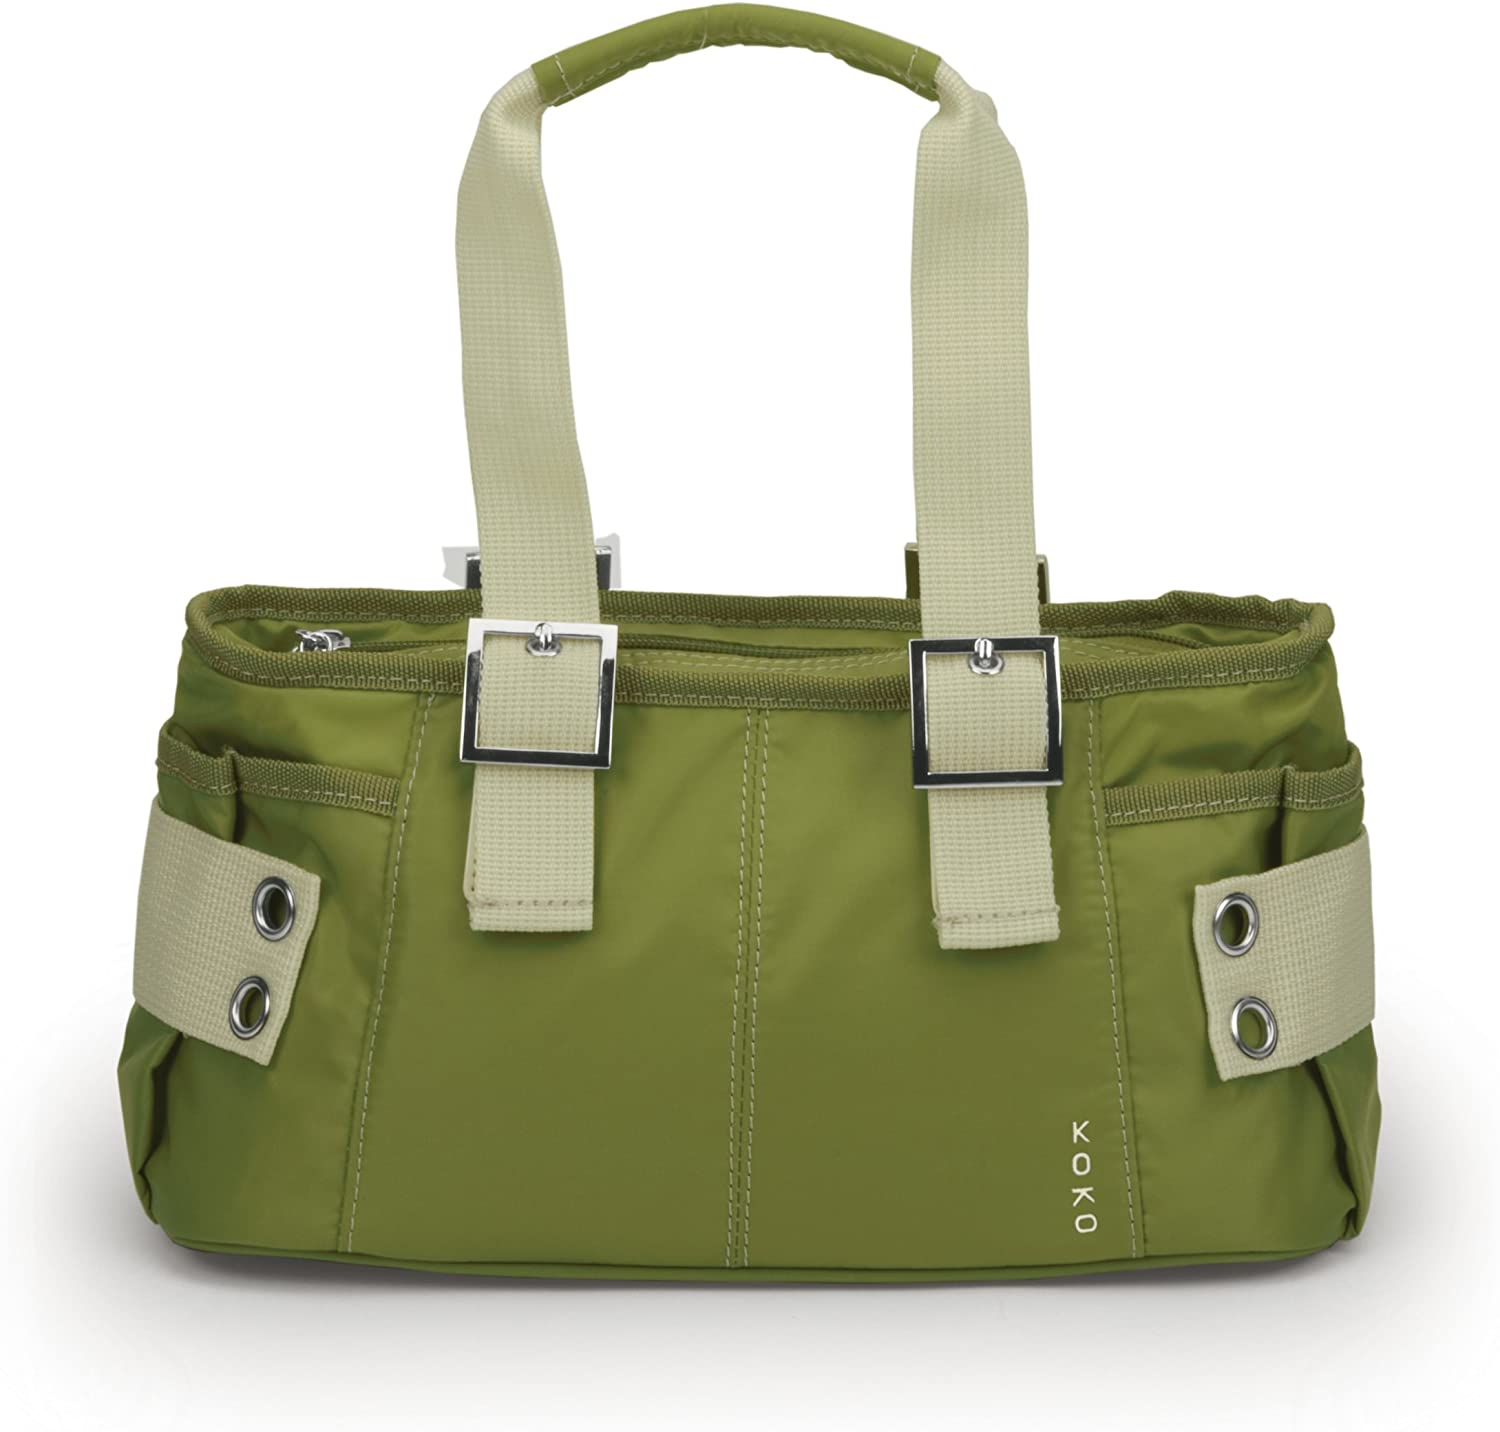 Koko Christy Lunch Bag, Light Green